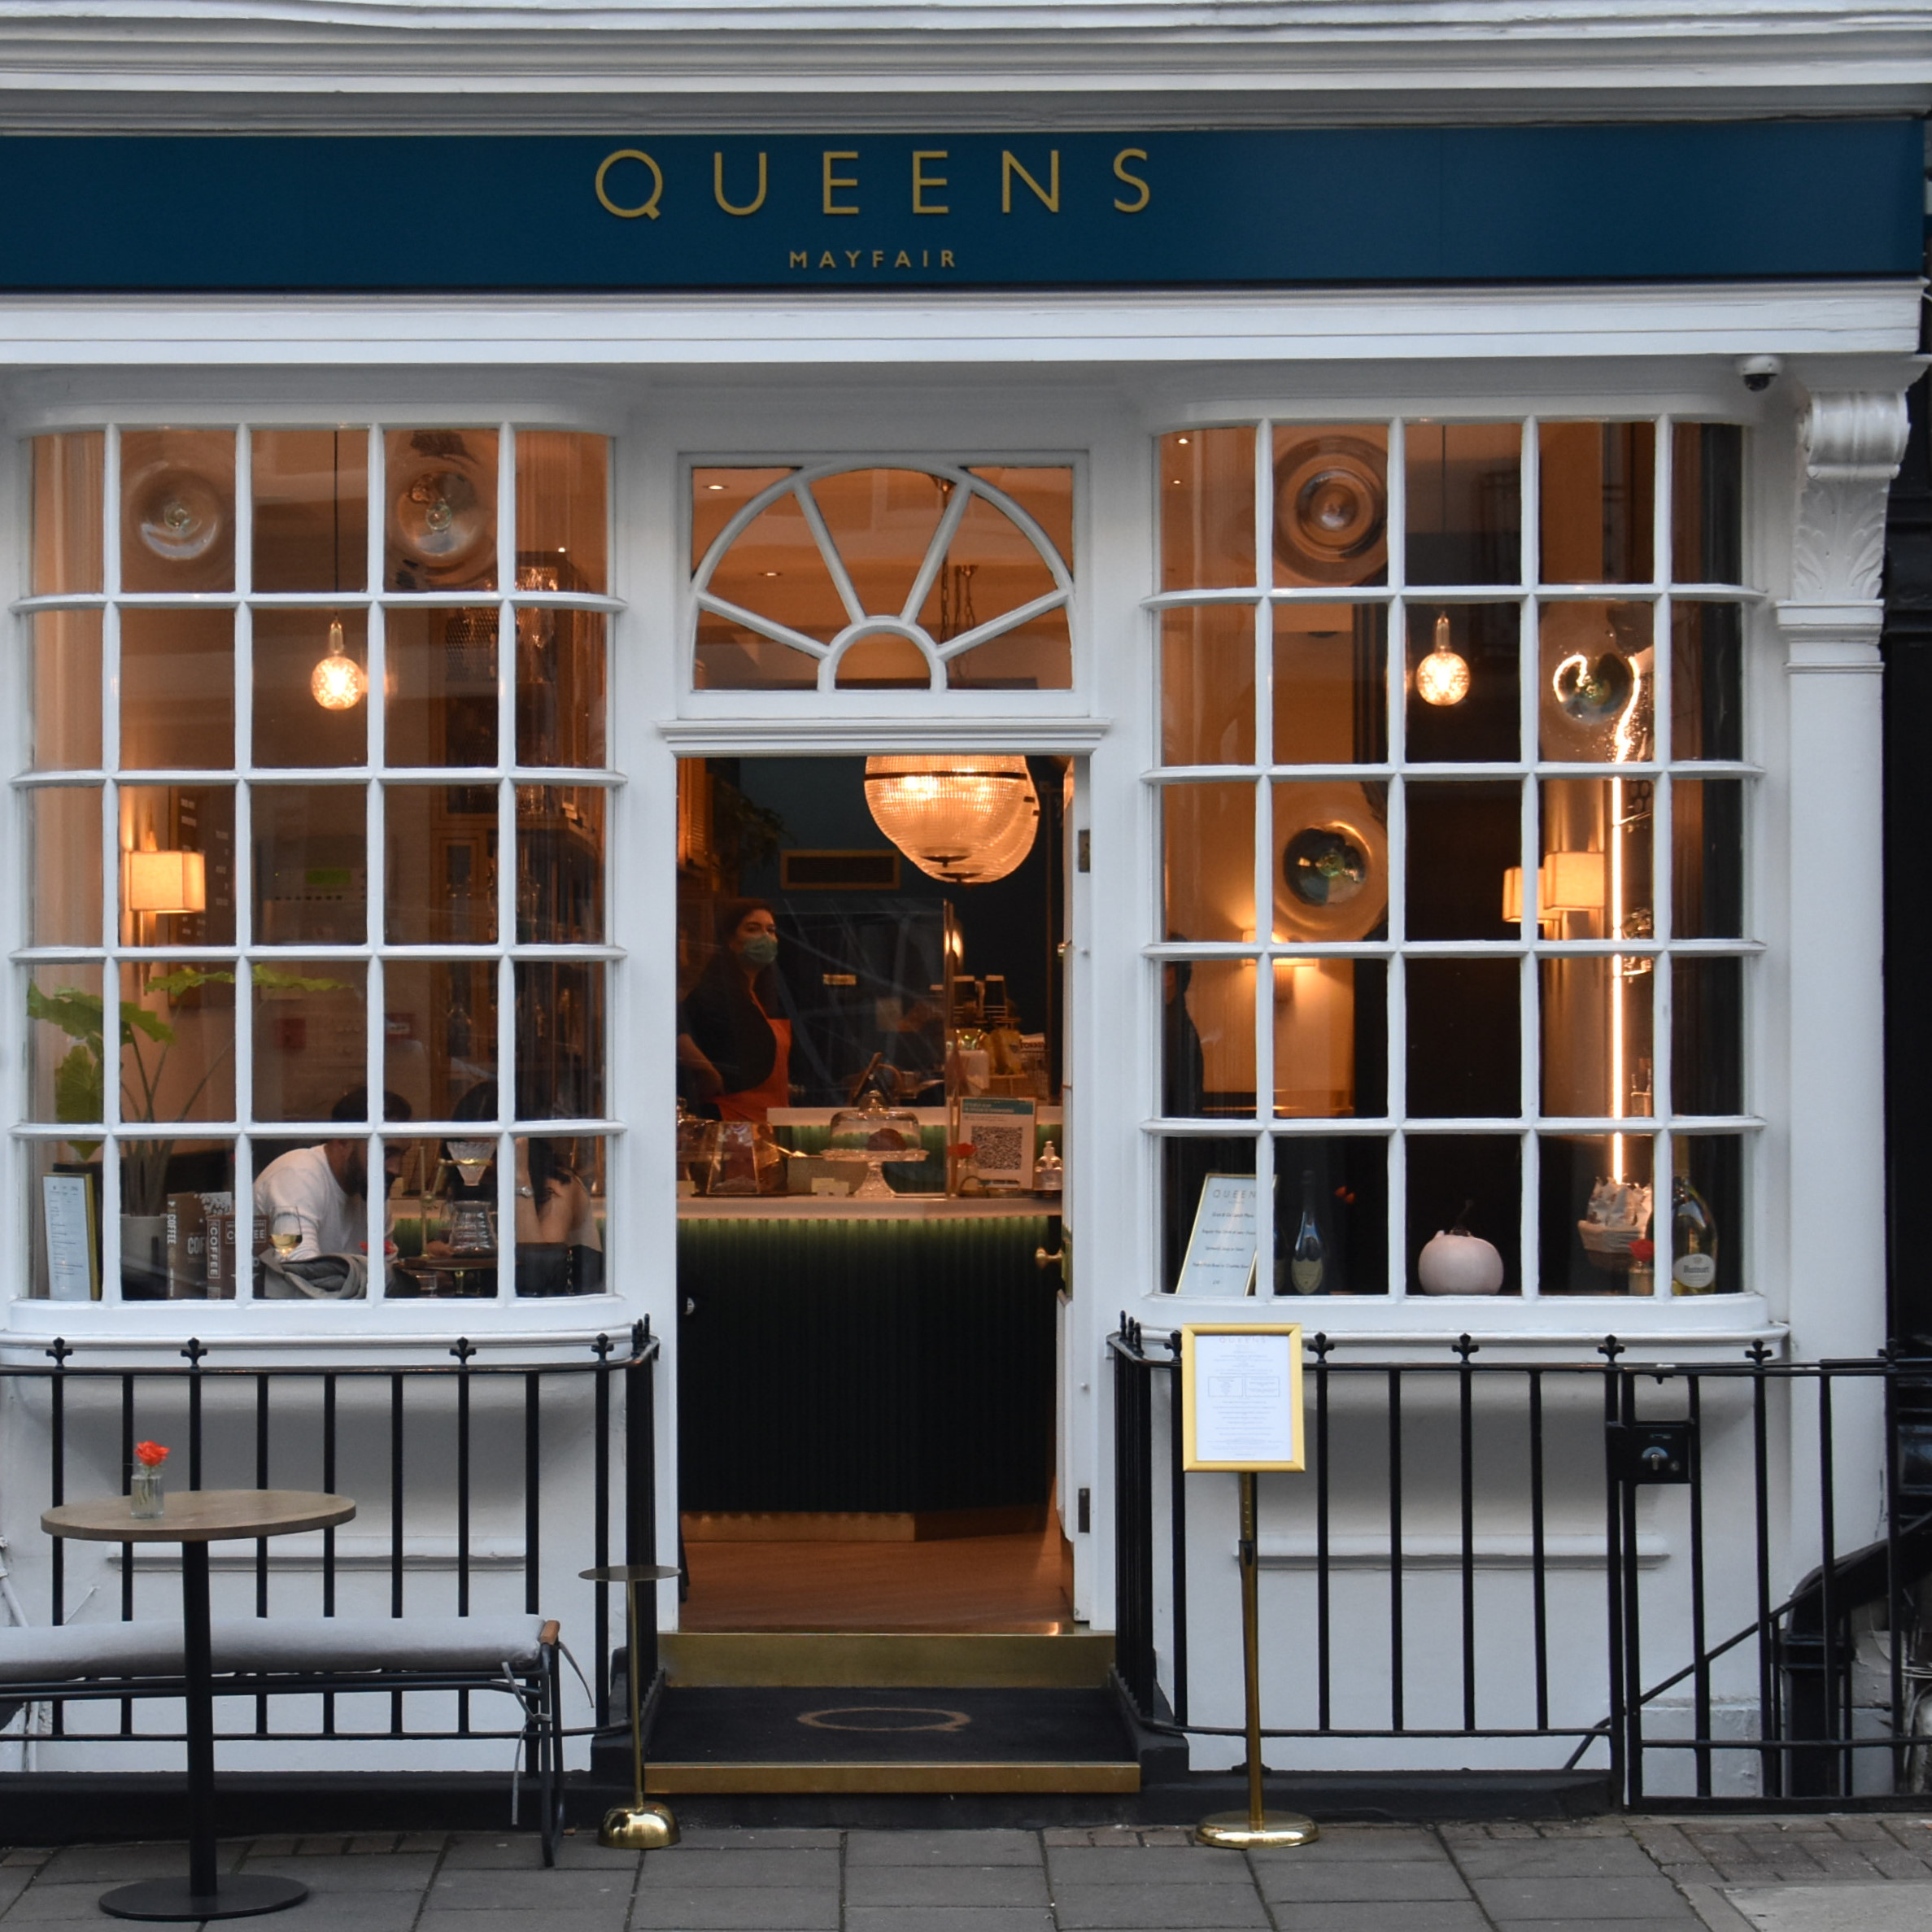 The unassuming façade of Queens of Mayfair, the central door flanked by two tall, square-paned bay windows. There's also a table on the pavement in front of the window to the left of the door.